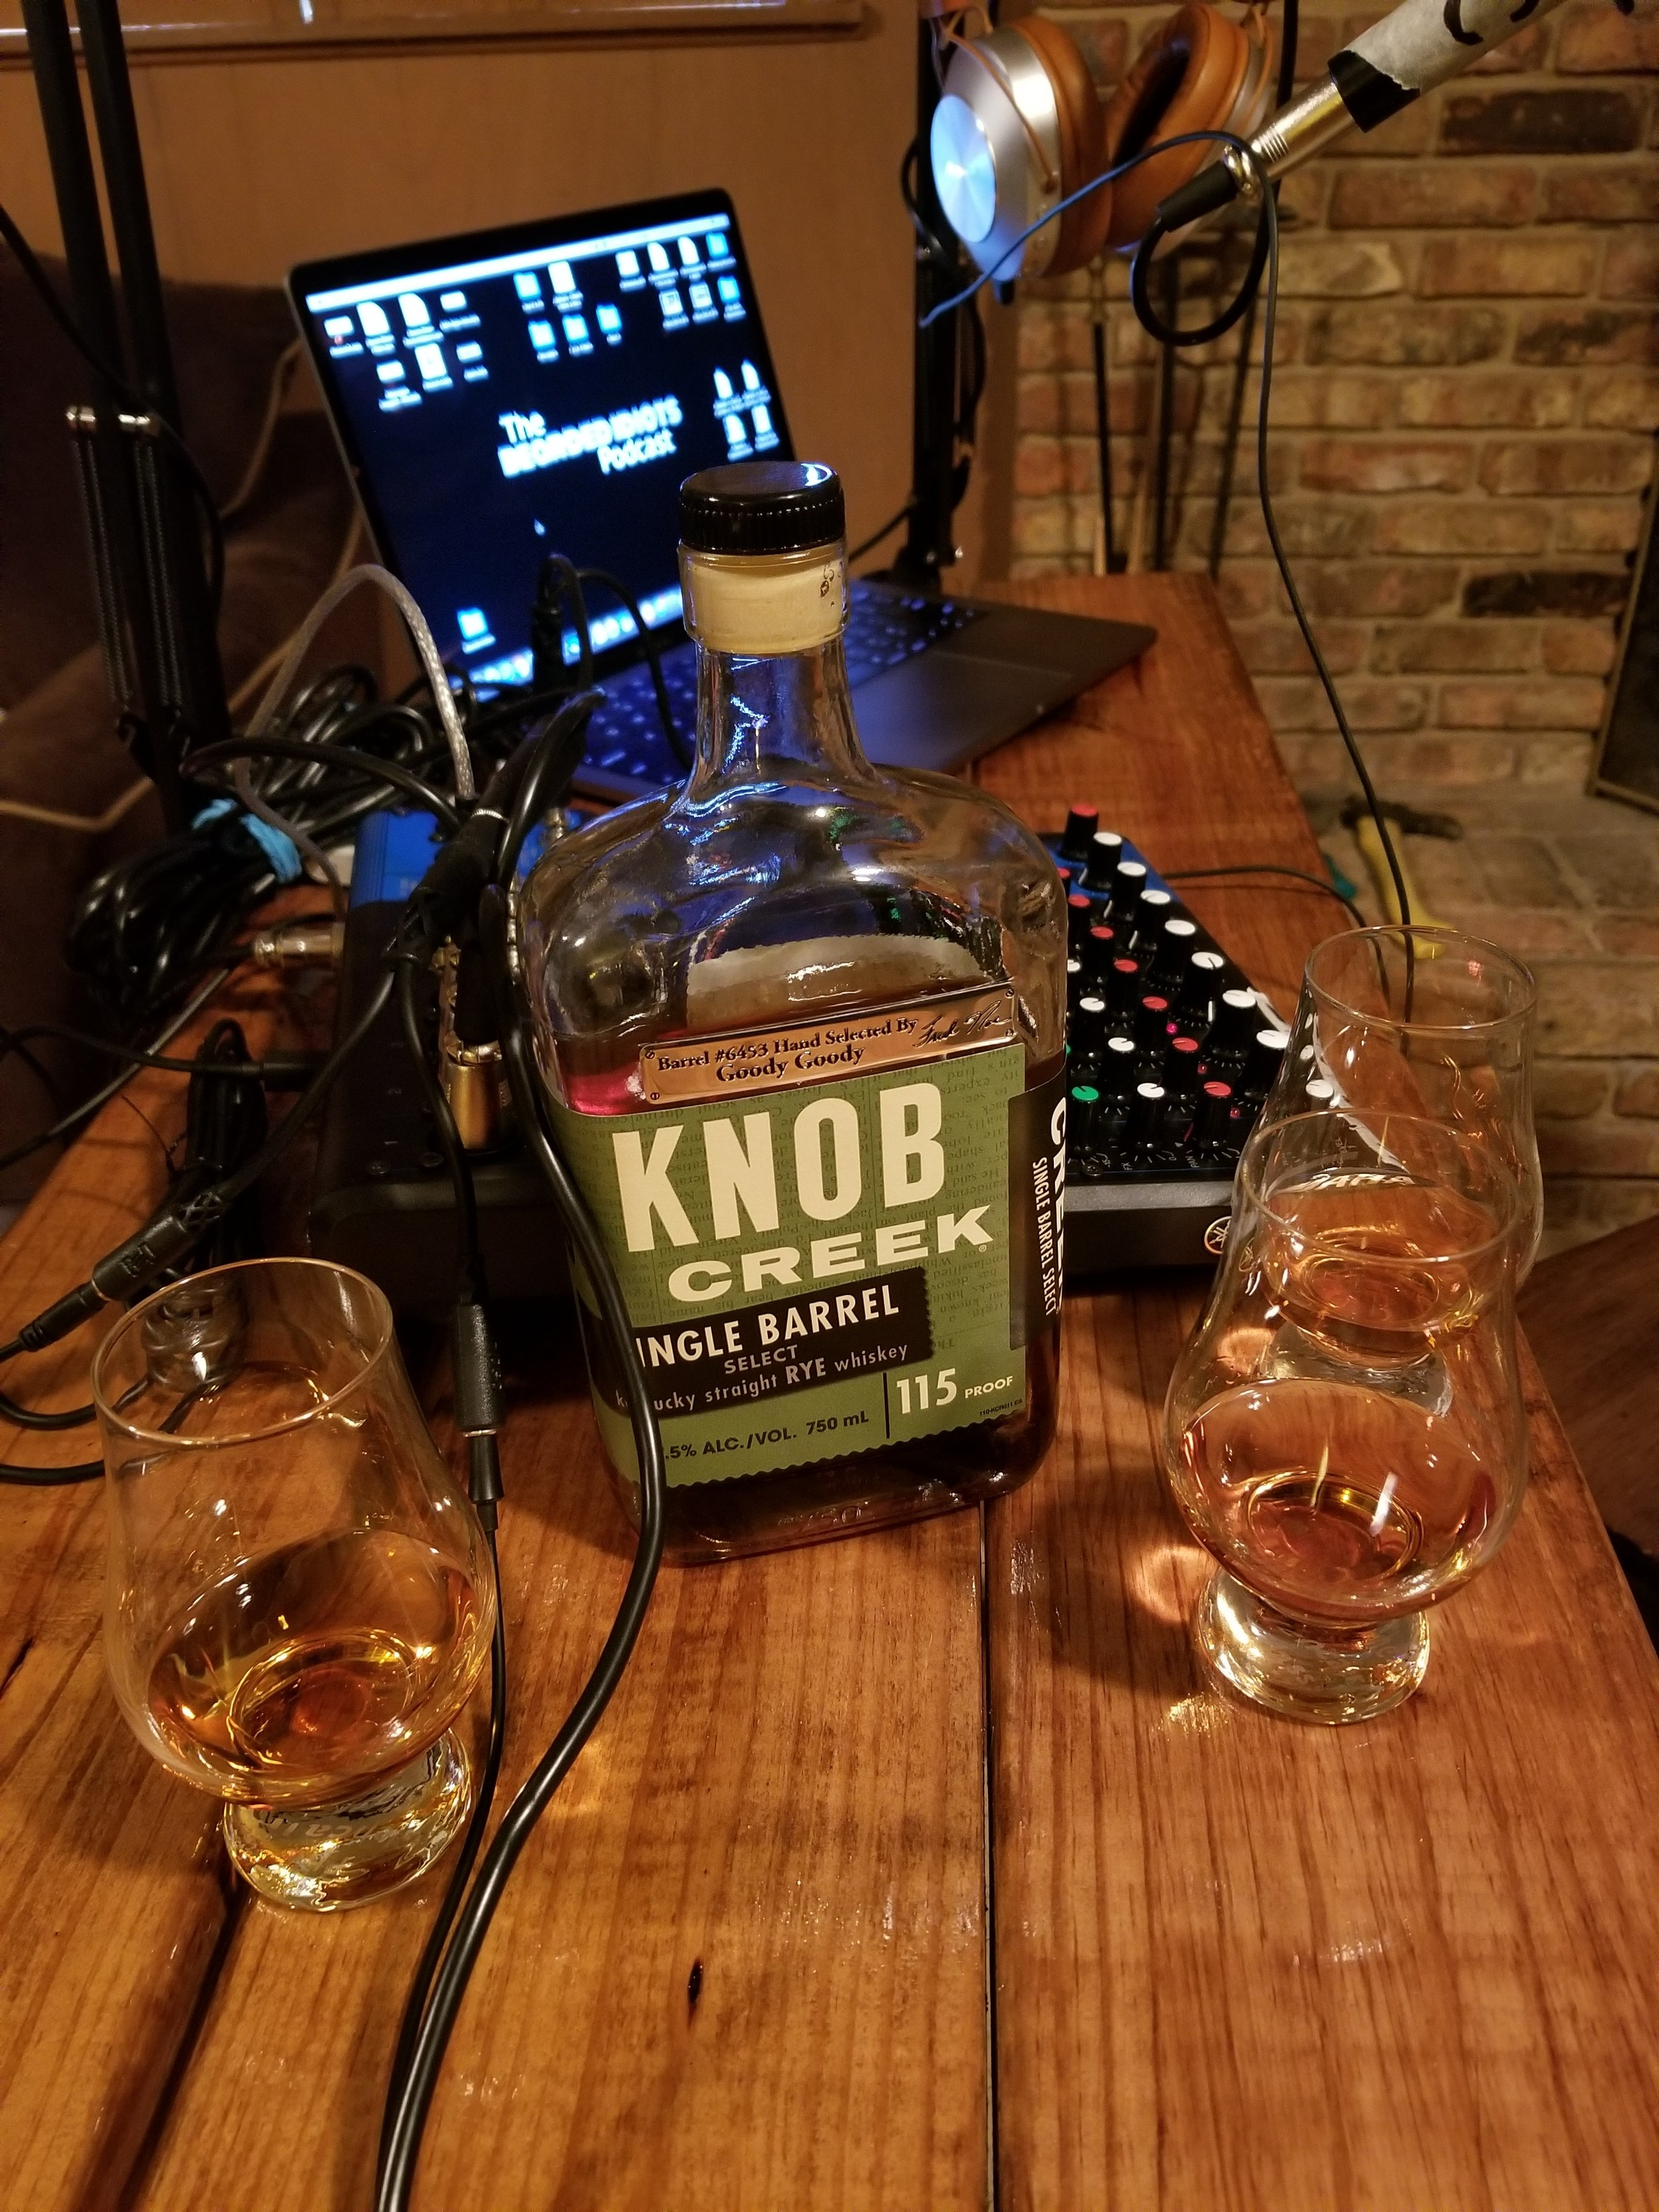 Episode the 11th - Knob Creek review, a crazy lady, agreeing to disagree, hair (in all forms), a terrible mother, and scary childhood movies